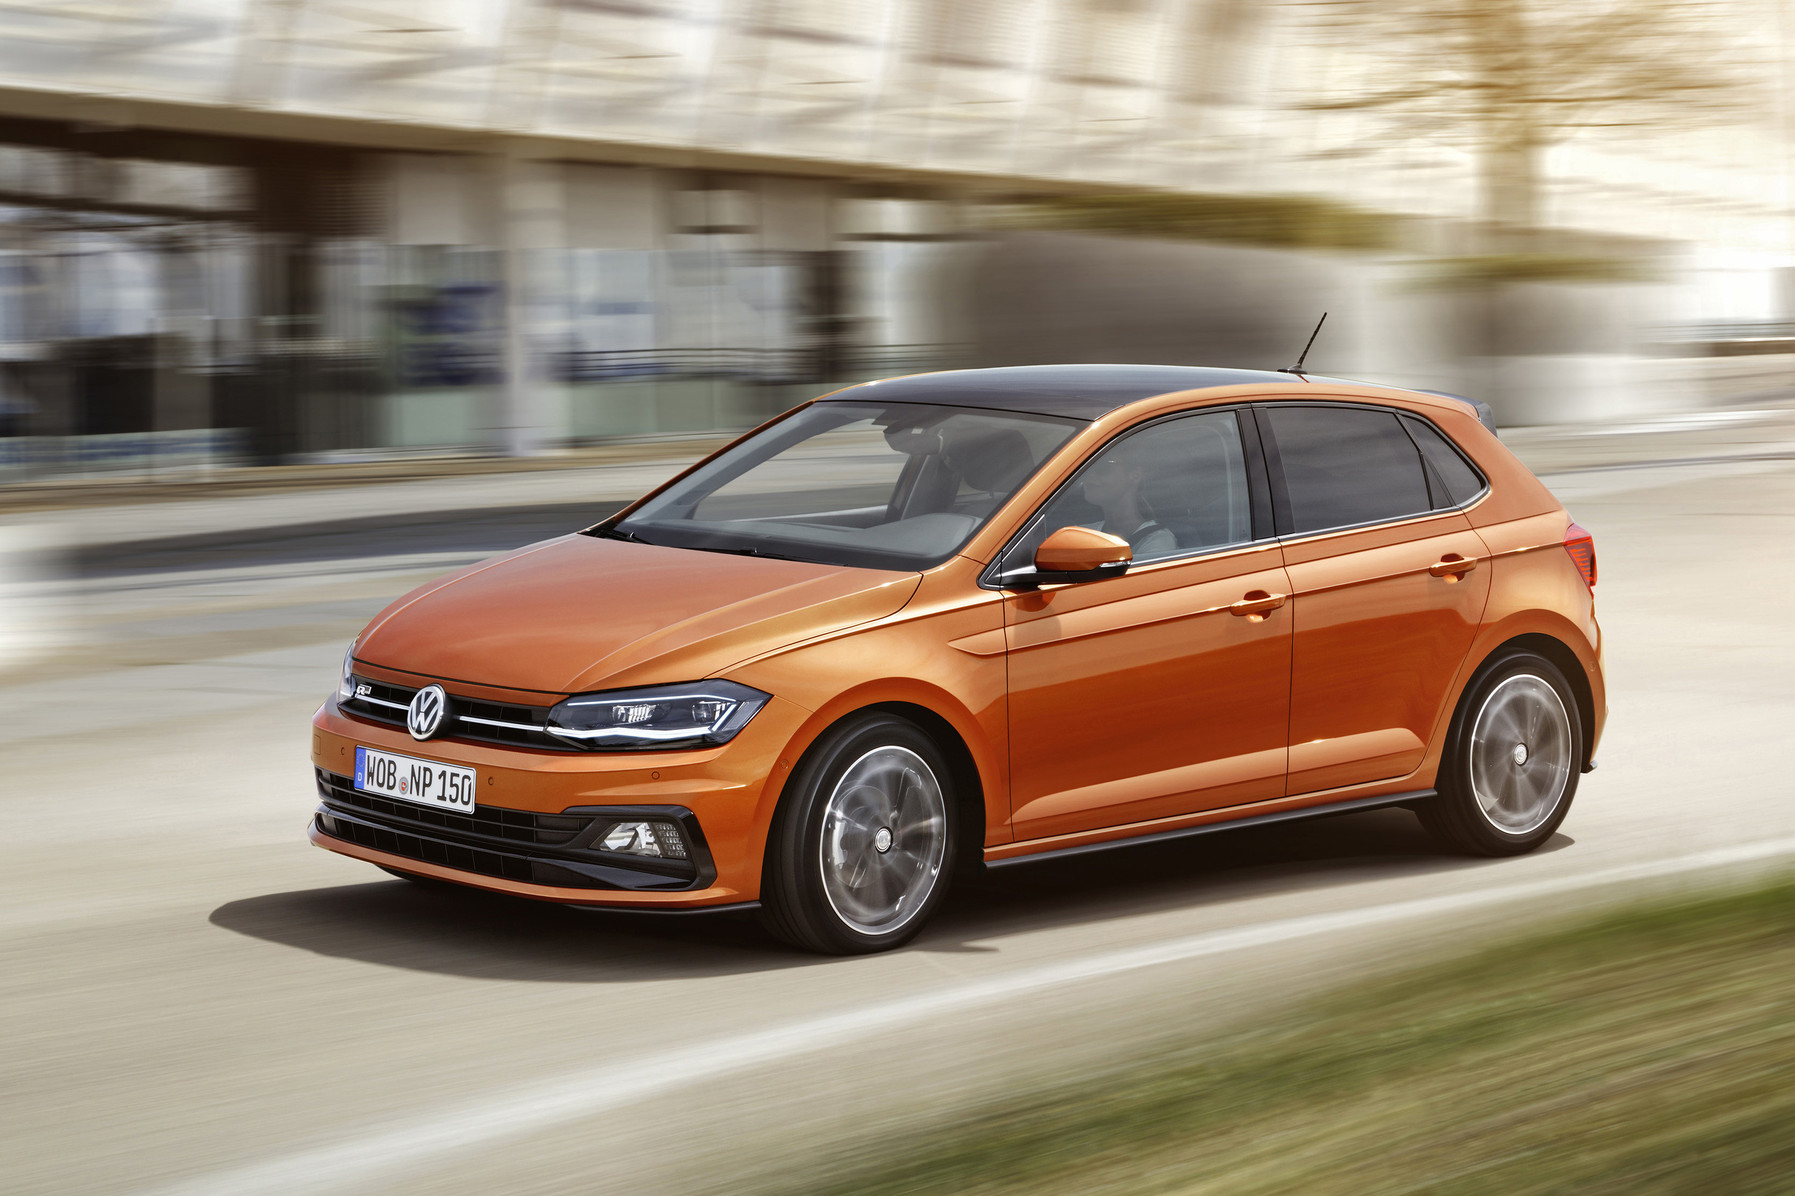 Best-selling cars in the UK - Volkswagen Polo